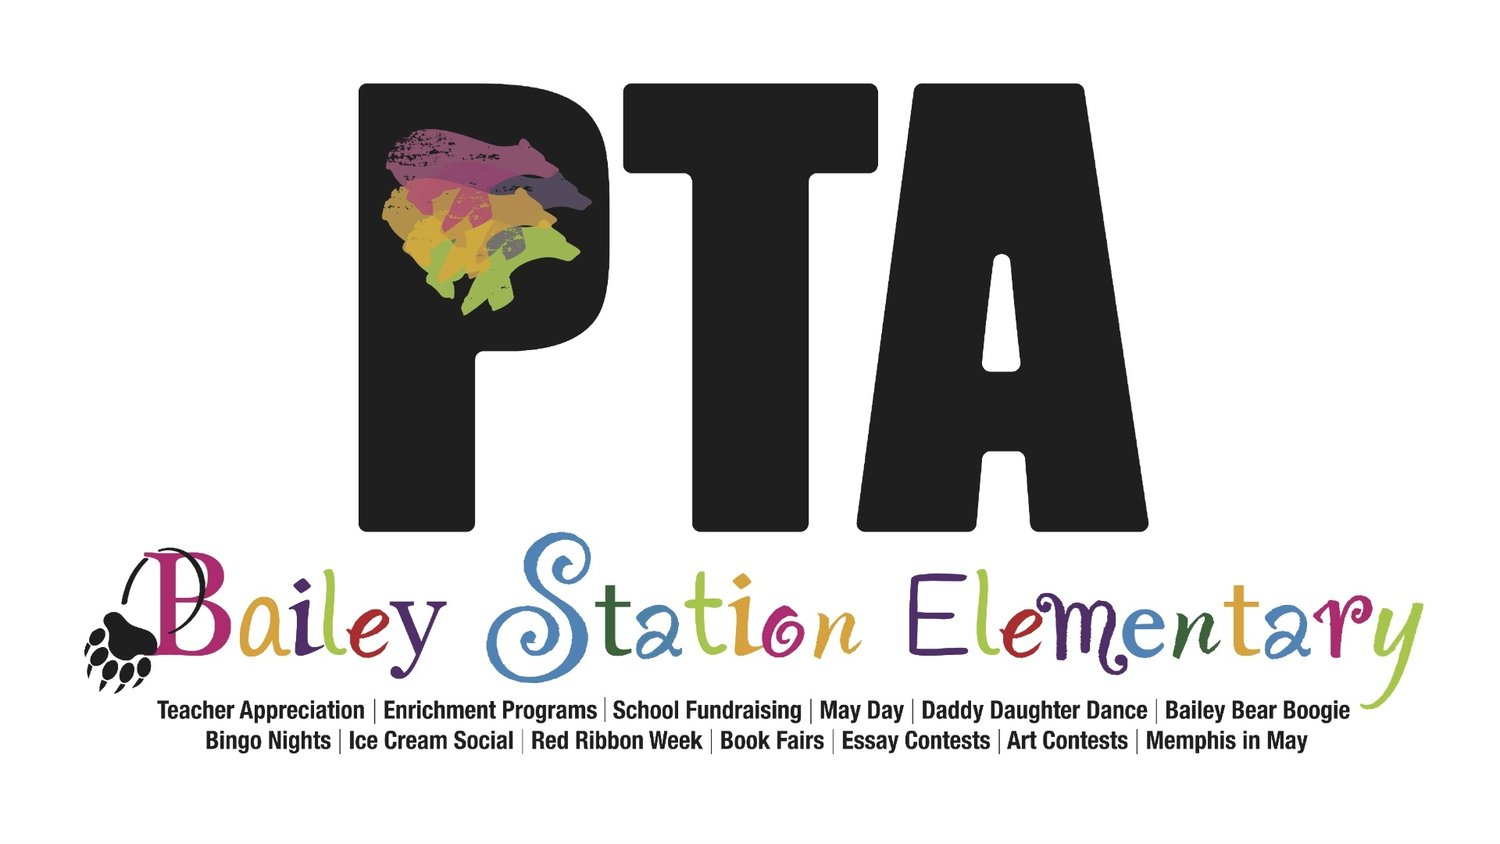 Bailey Station Elementary PTA